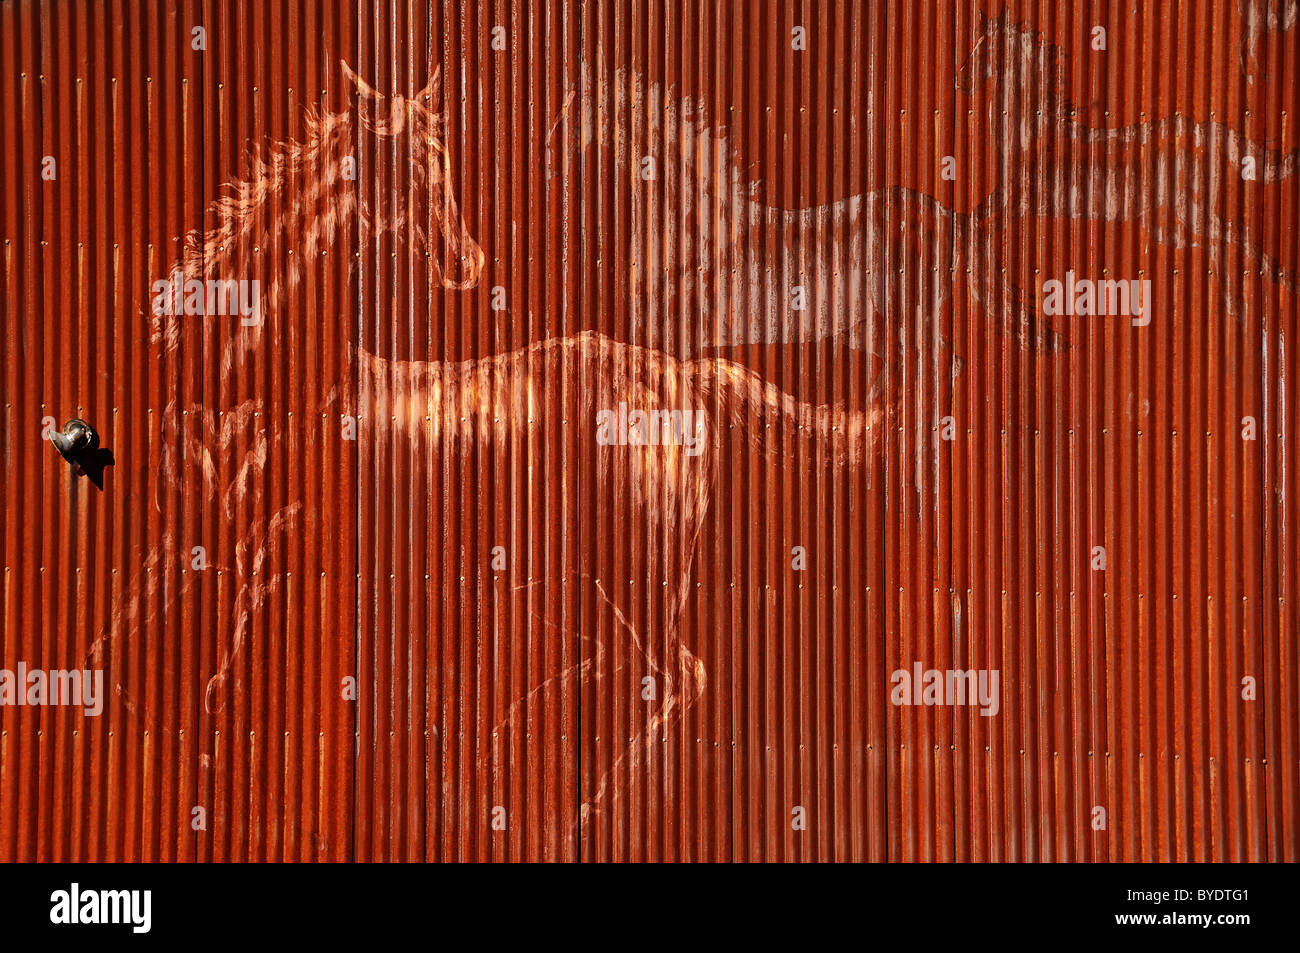 Graffiti painted on the side of a  red corrugated iron barn, seen near Tucson, Arizona, United States of America - Stock Image